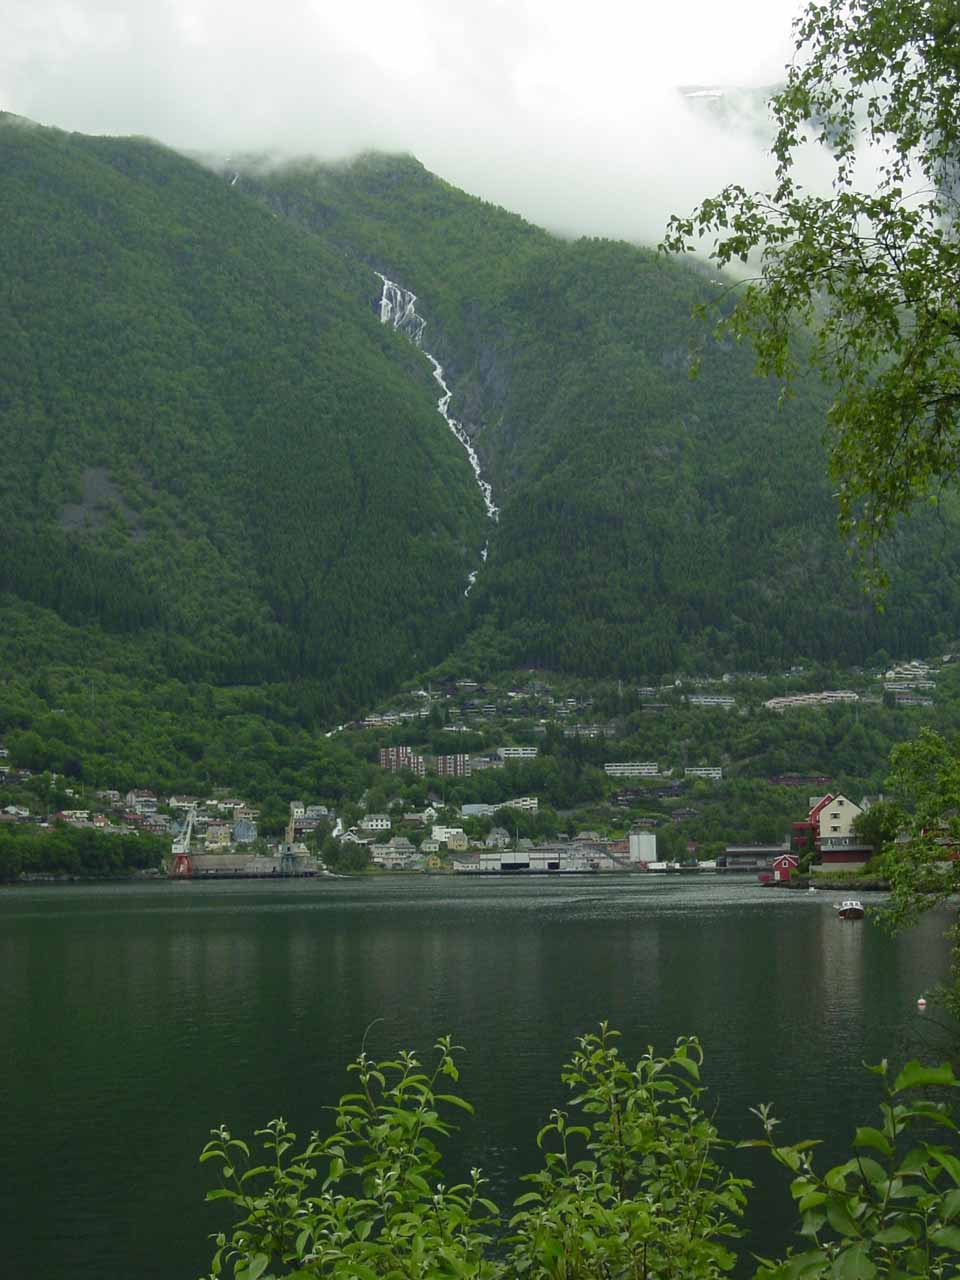 Our journey to Ædnafossen and beyond pretty much started from the industrialized yet beautifully-situated town of Odda